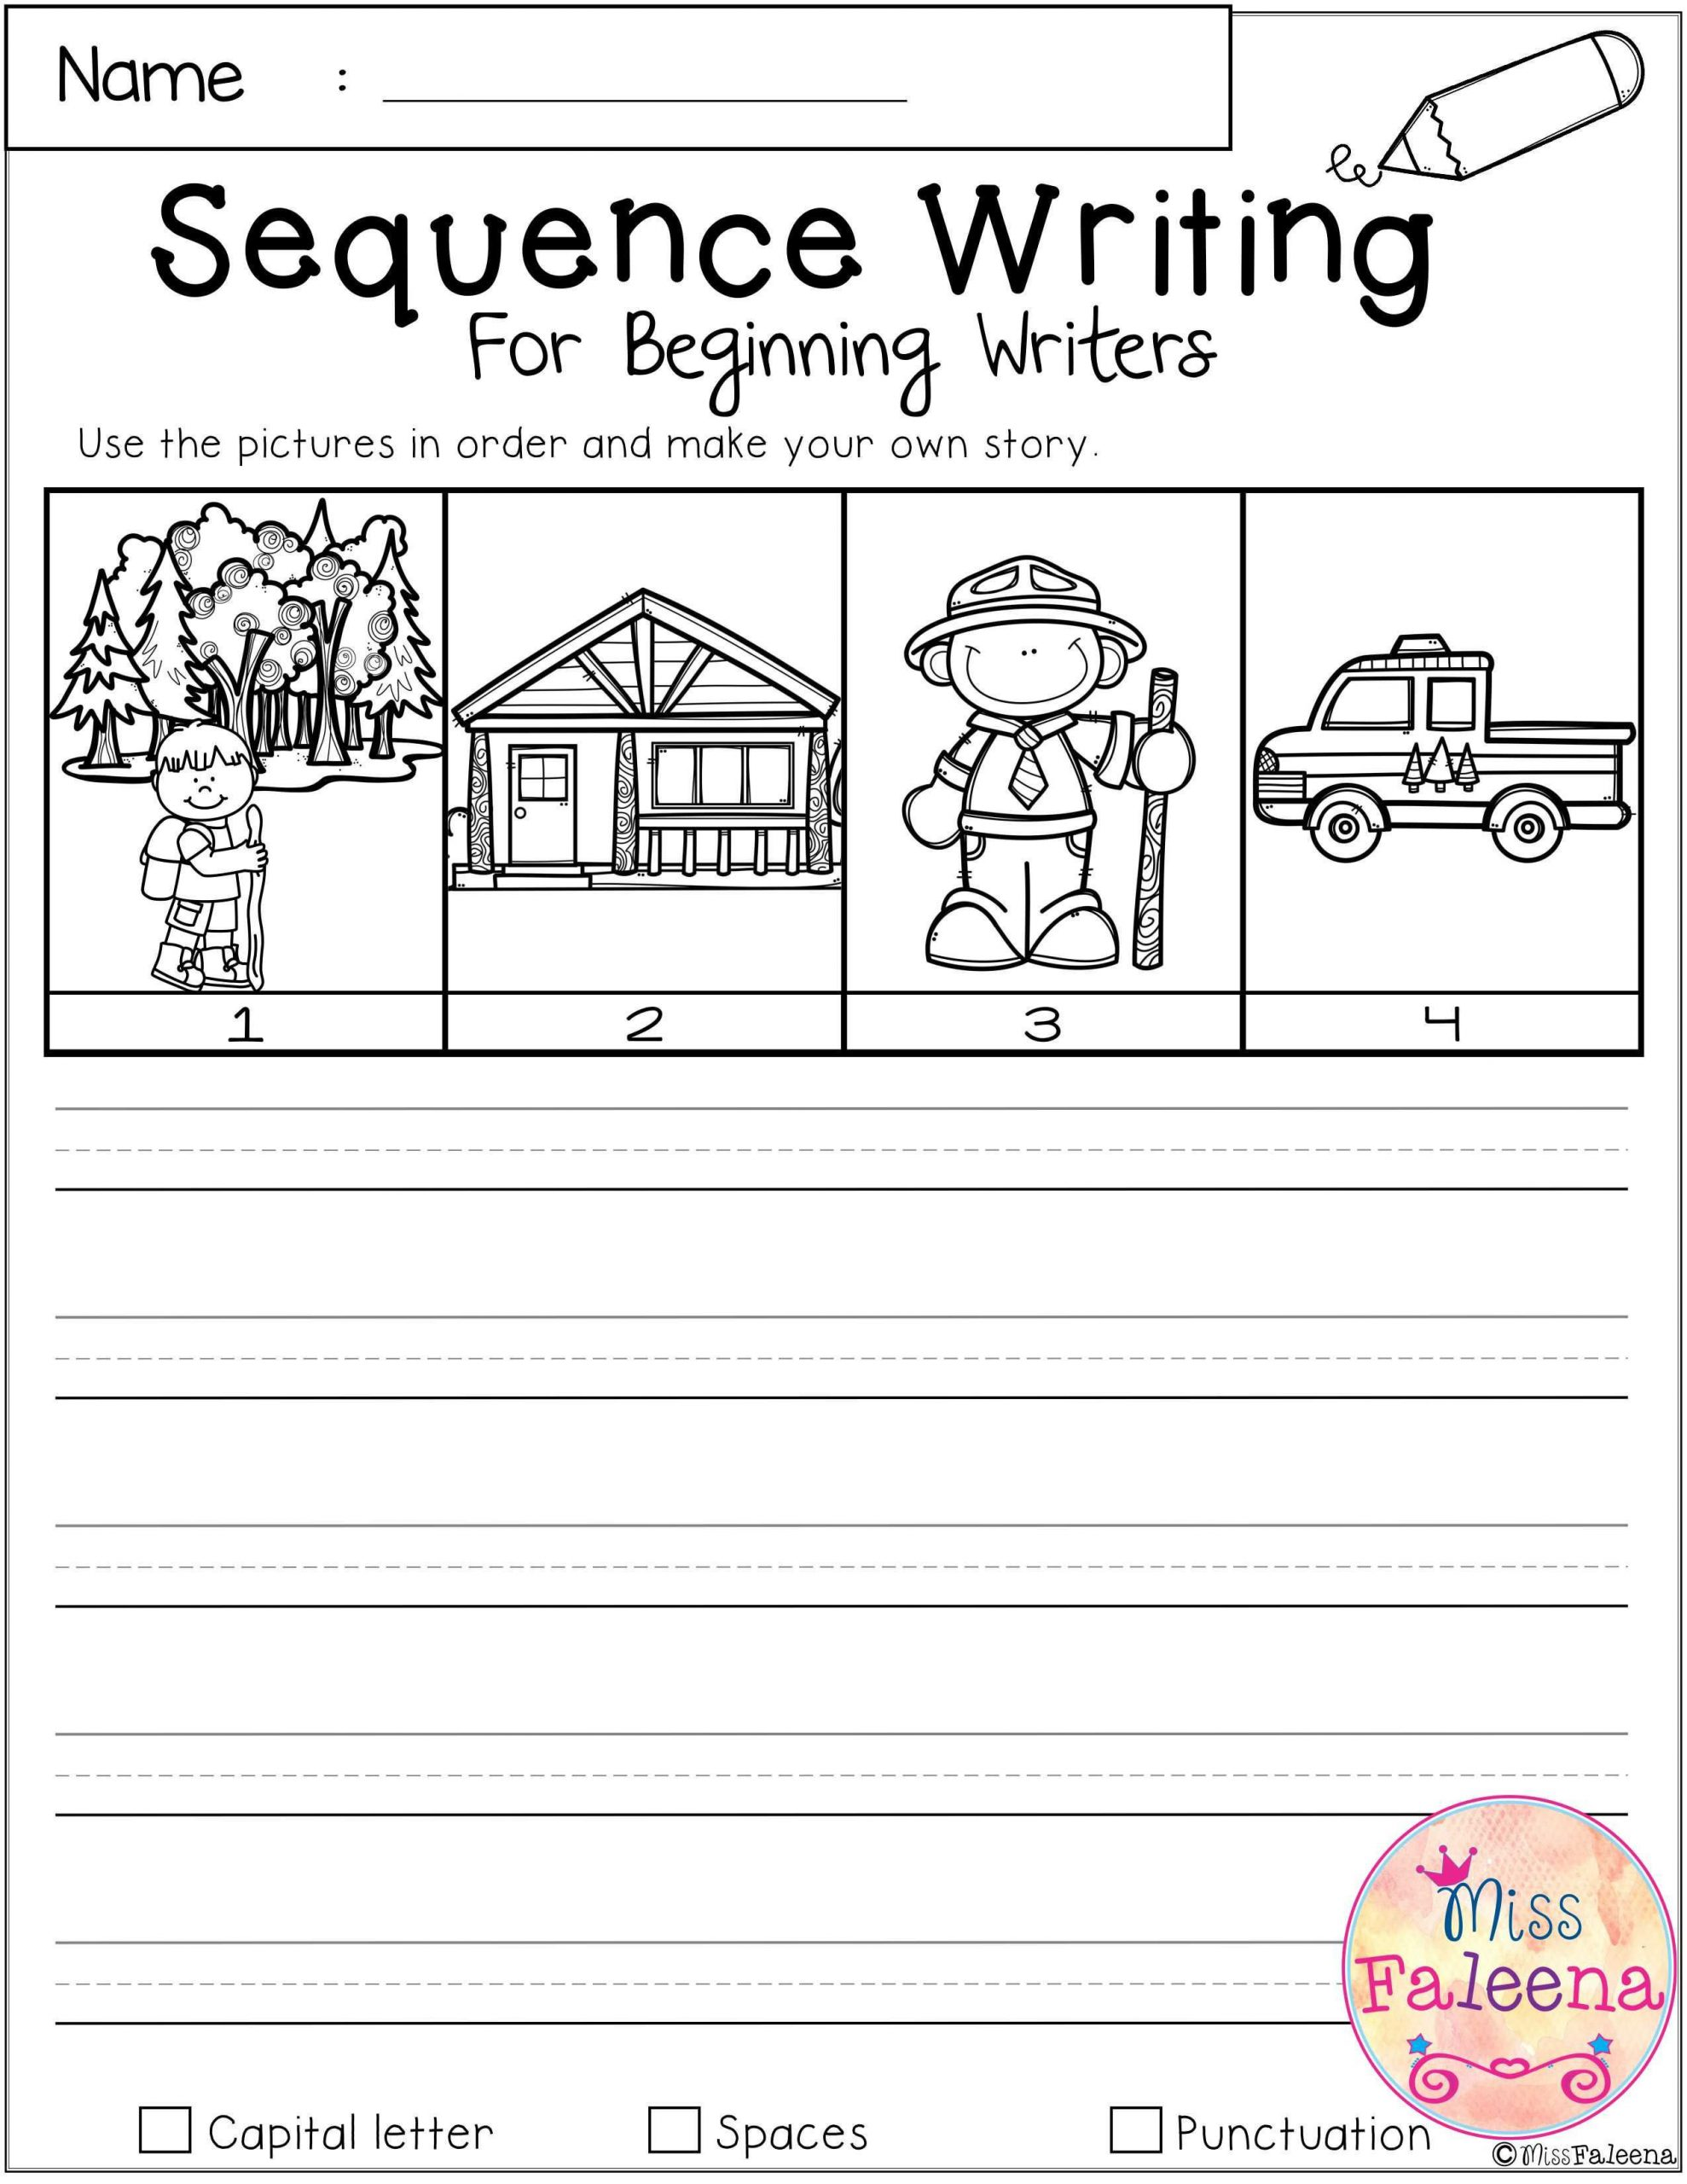 Sequencing Worksheets Middle School September Sequence Writing for Beginning Writers